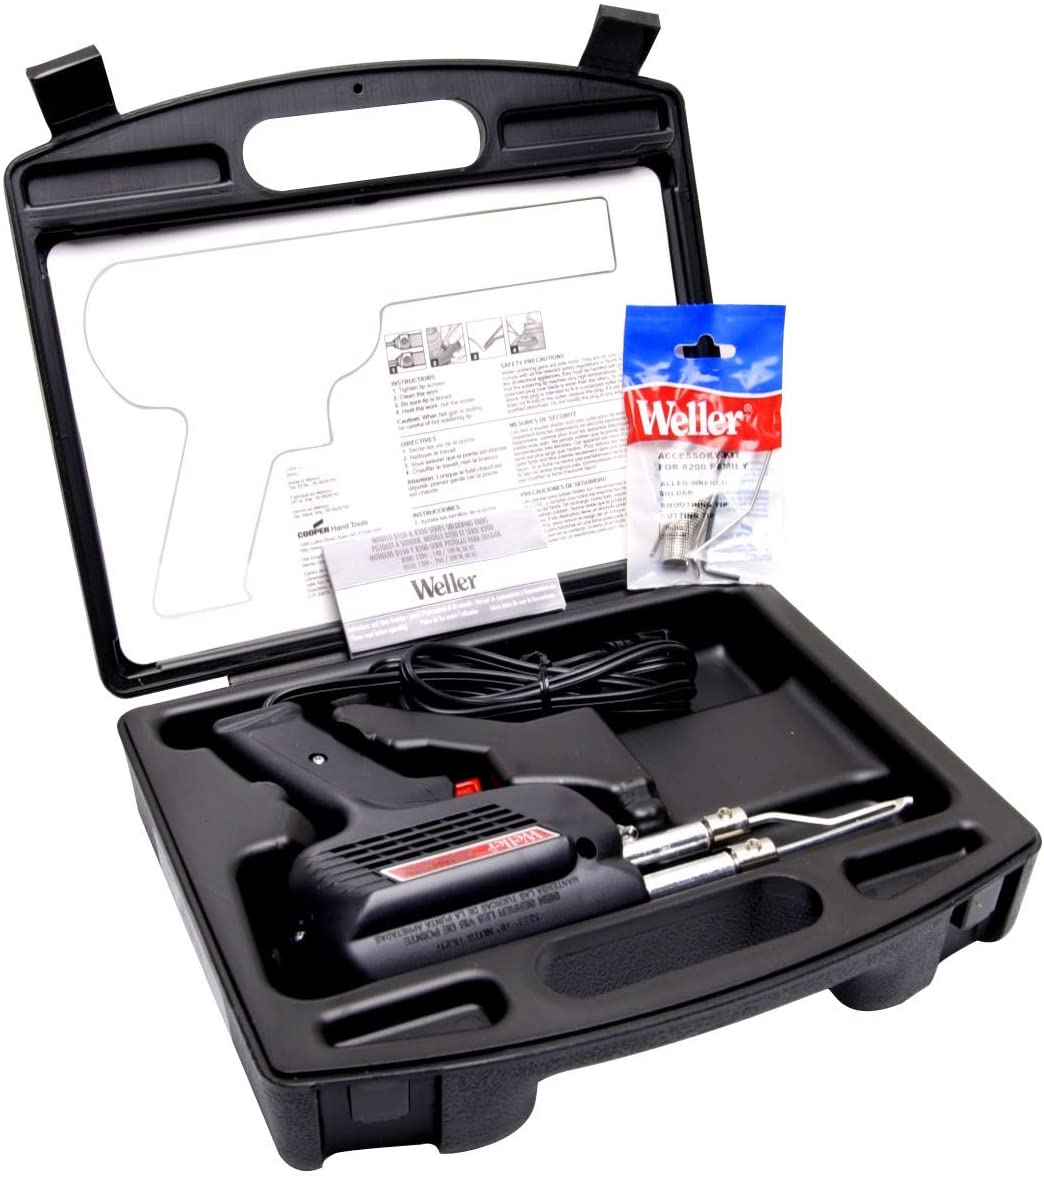 B00002N7S1 Weller D550PK 260-Watt/200W Professional Soldering Gun Kit with Three Tips and Solder in Carrying Case 71hXpEqPN6L